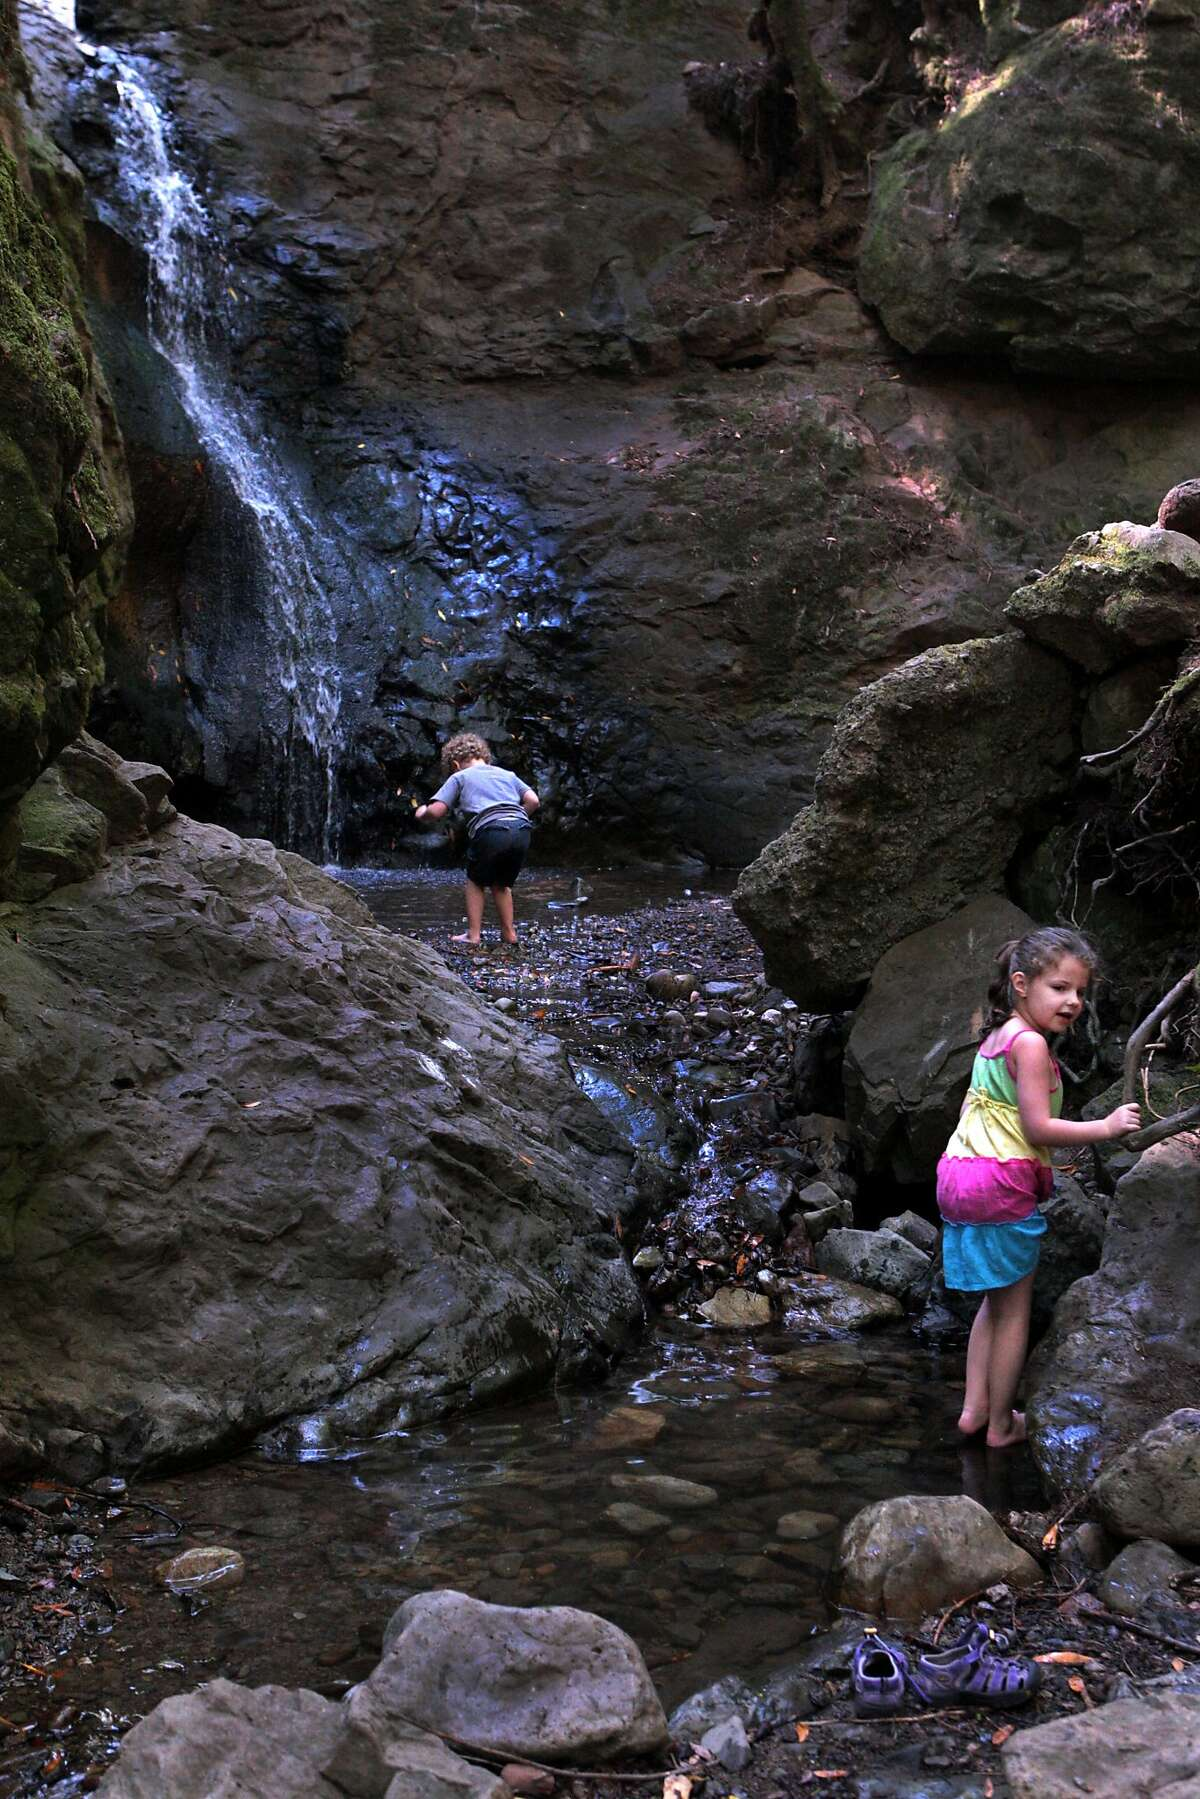 William Holley, 4, looks for rocks and sister Gianna, 5, of Towaco, New Jersey looks back at their mother, Heather as they wade and climb toward Cascade Falls on Thursday, July 24, 2014 in Mill Valley, Calif. Heather Holley said she grew up in Mill Valley and brought her children to see the falls while visiting the Bay Area.